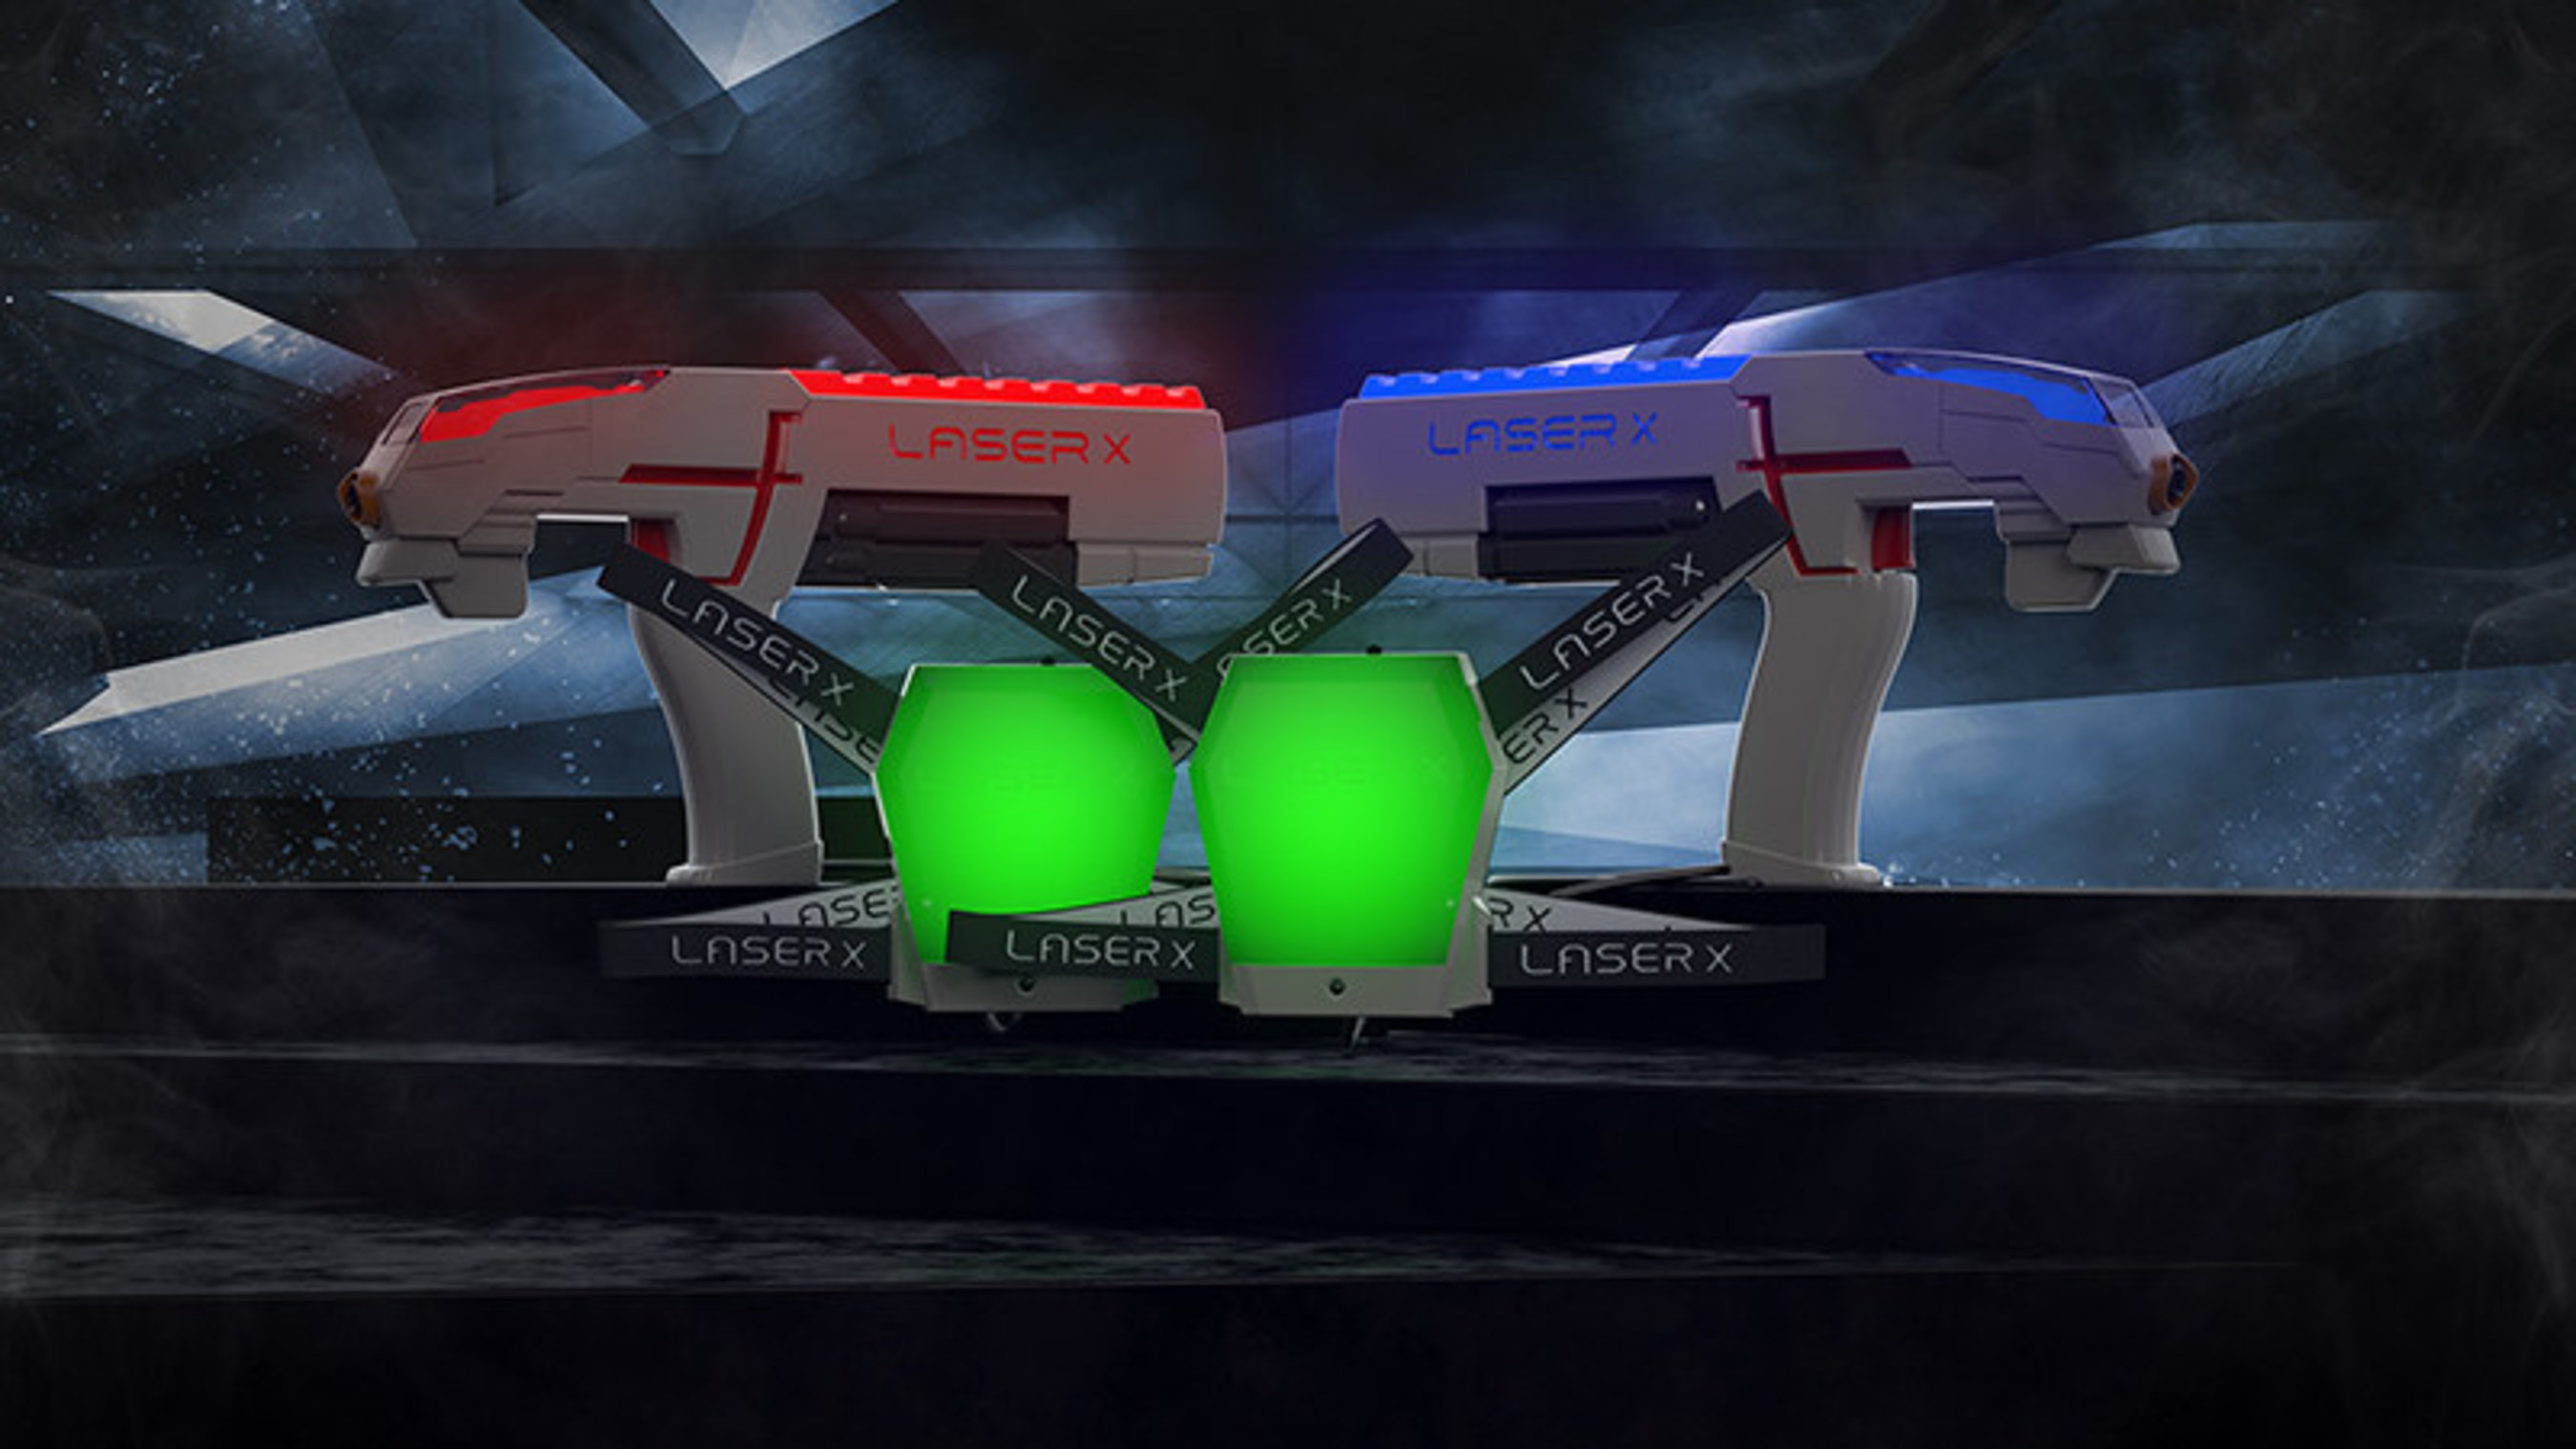 Nsi International Introduces Laser X The Ultimate High Tech Game Outdoor Electrical Receptacle Group Picture Image By Tag Uses Sophisticated Electronics And Optics To Give Players Pinpoint Blasting Accuracy Up 200